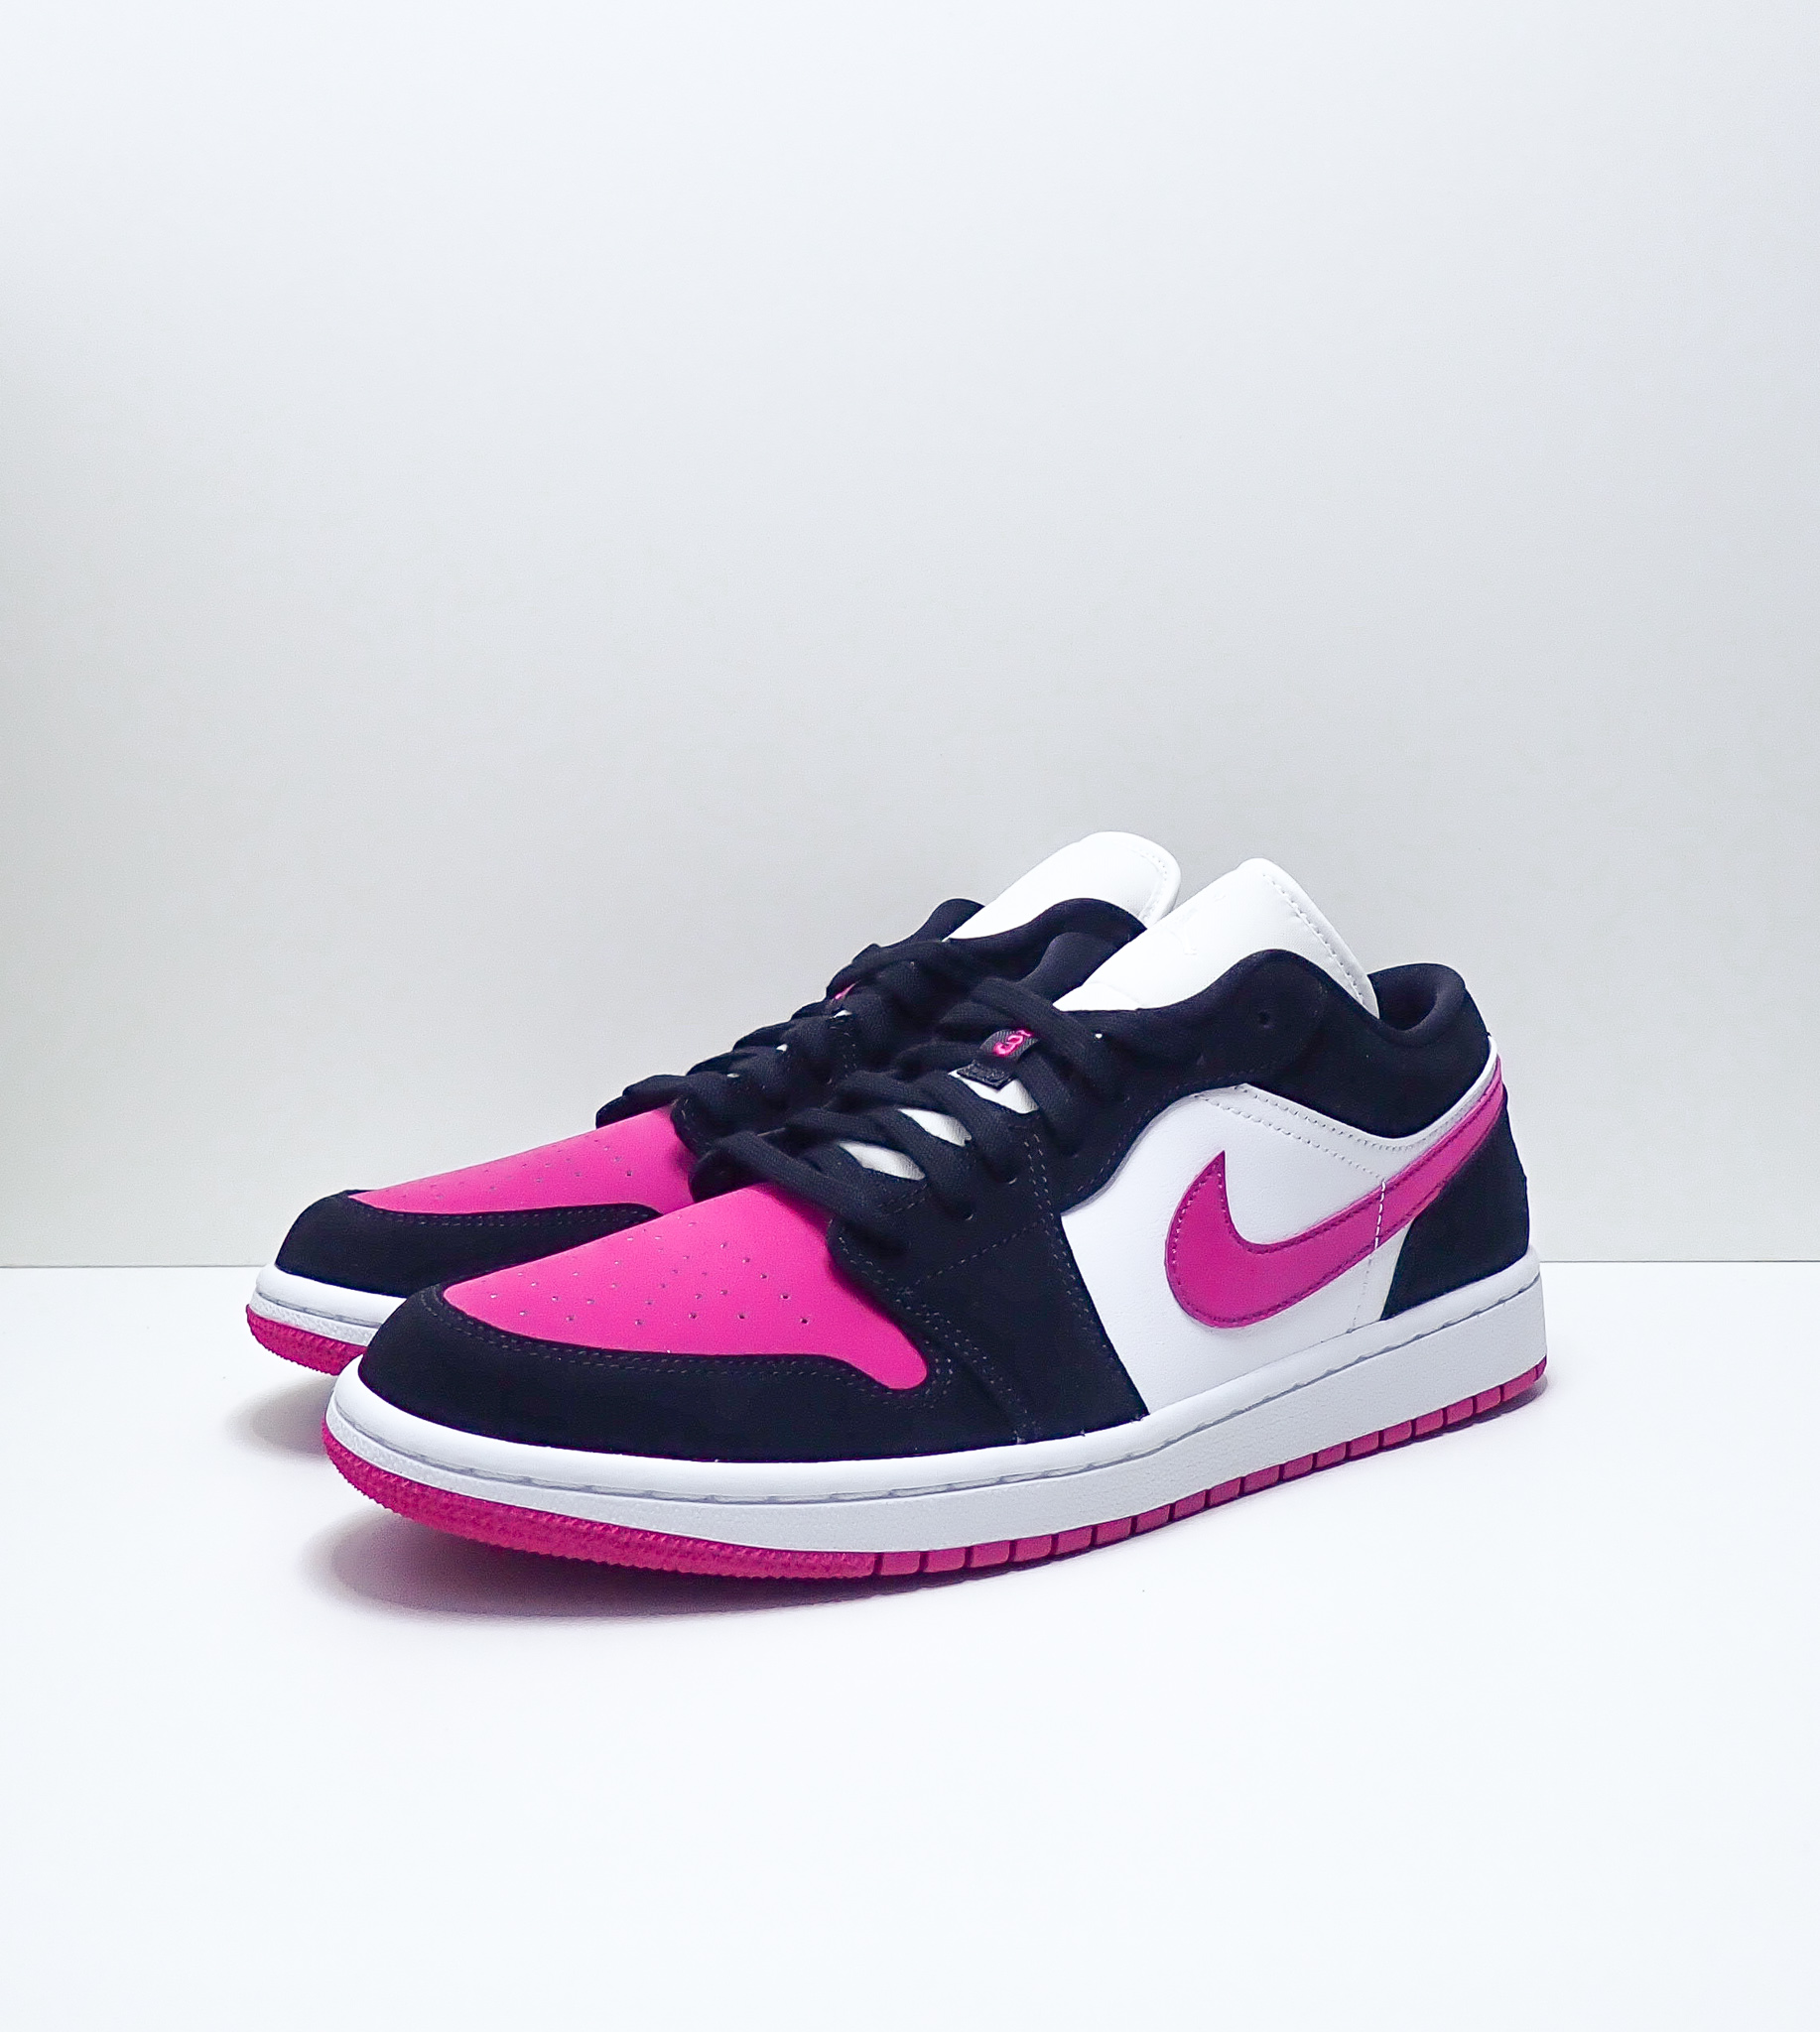 Jordan 1 Low Berry